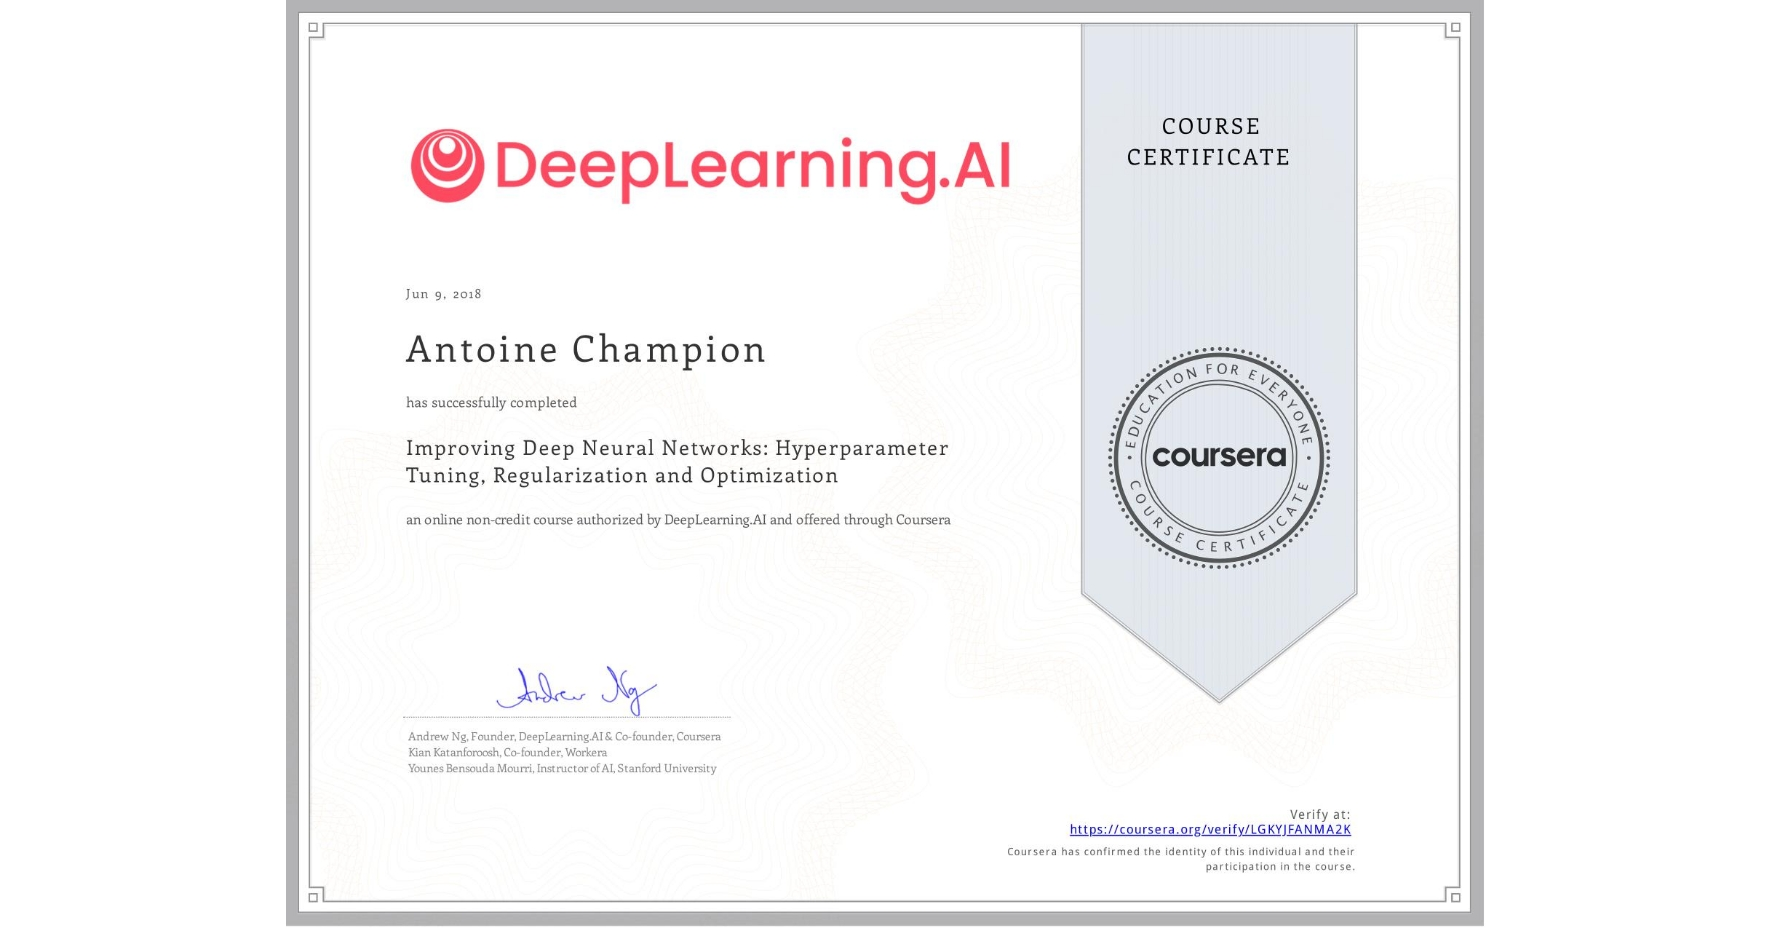 View certificate for Antoine Champion, Improving Deep Neural Networks: Hyperparameter tuning, Regularization and Optimization, an online non-credit course authorized by DeepLearning.AI and offered through Coursera